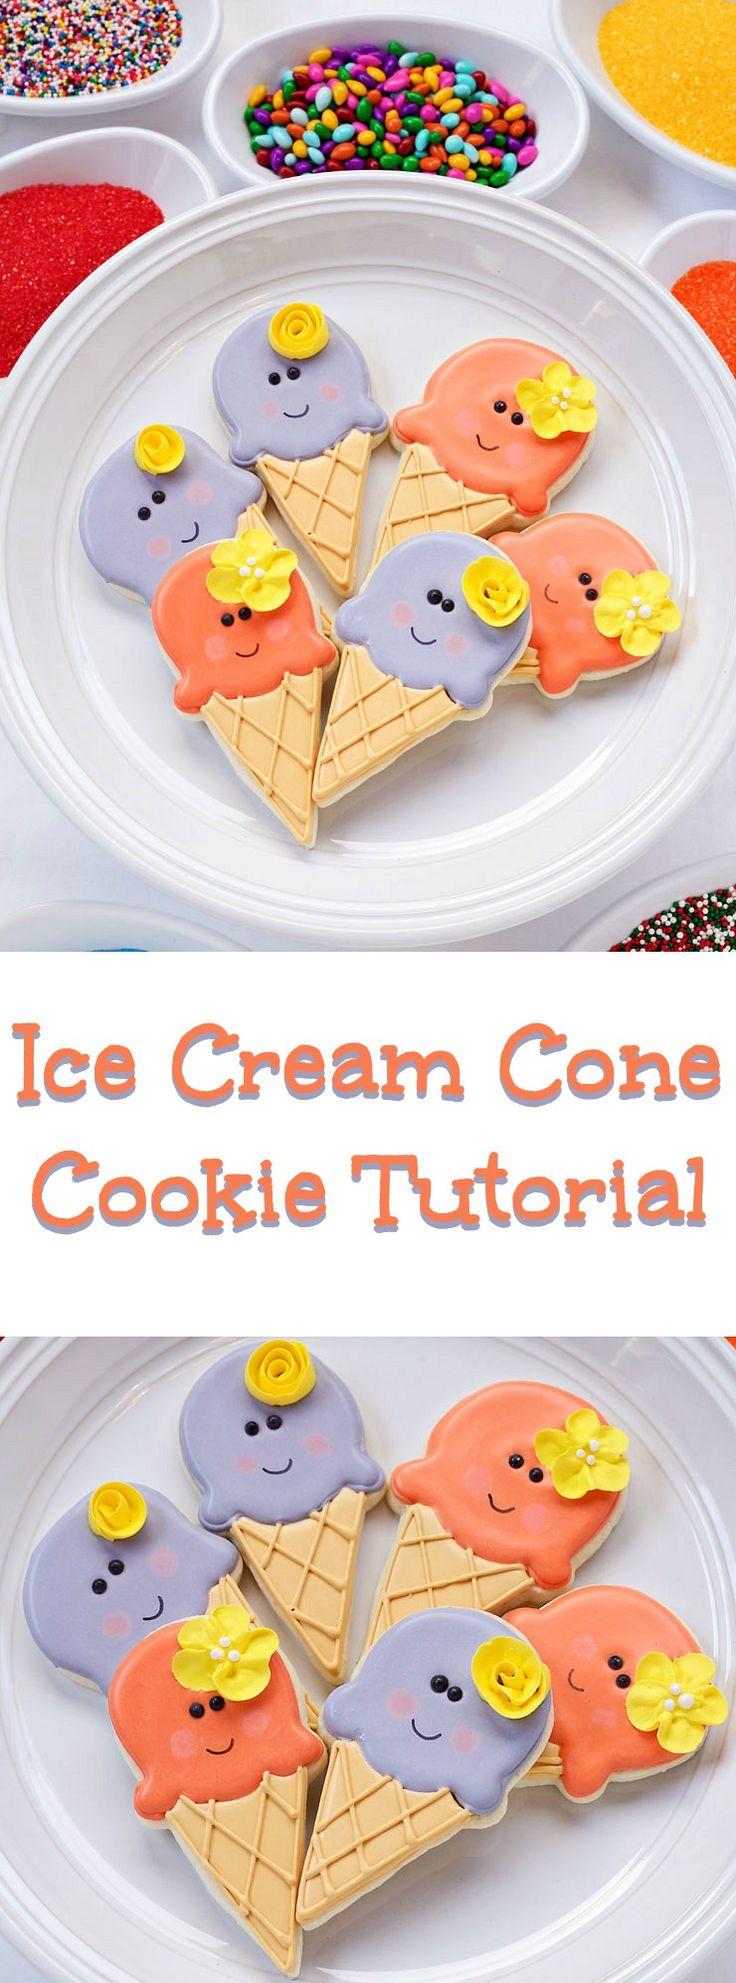 319 Best Cooking For Kids Images On Pinterest Funny Food Tous Les Jours Strawberry Fresh Cream Cake 2 E Voucher Simple Ice Cone Cookies